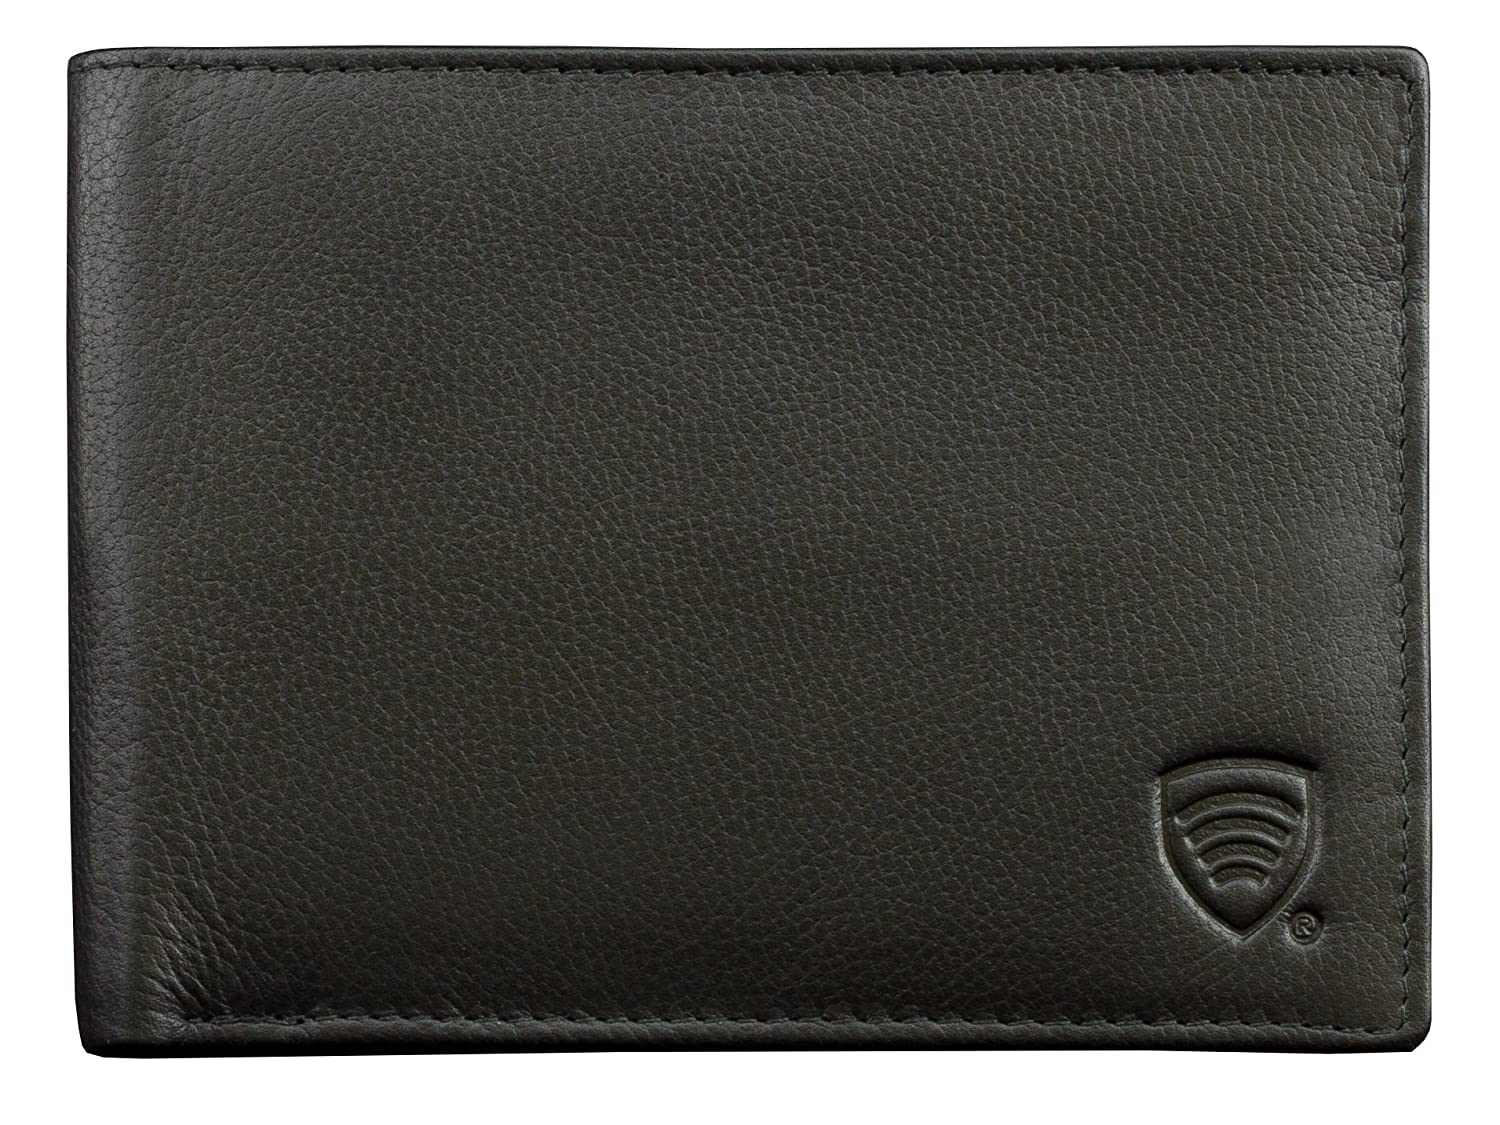 37bc489cbfc7 RFID Blocking mens Genuine Leather Shielded Billfold Credit Debit cards  Protective Wallet (BBS): Amazon.co.uk: Luggage